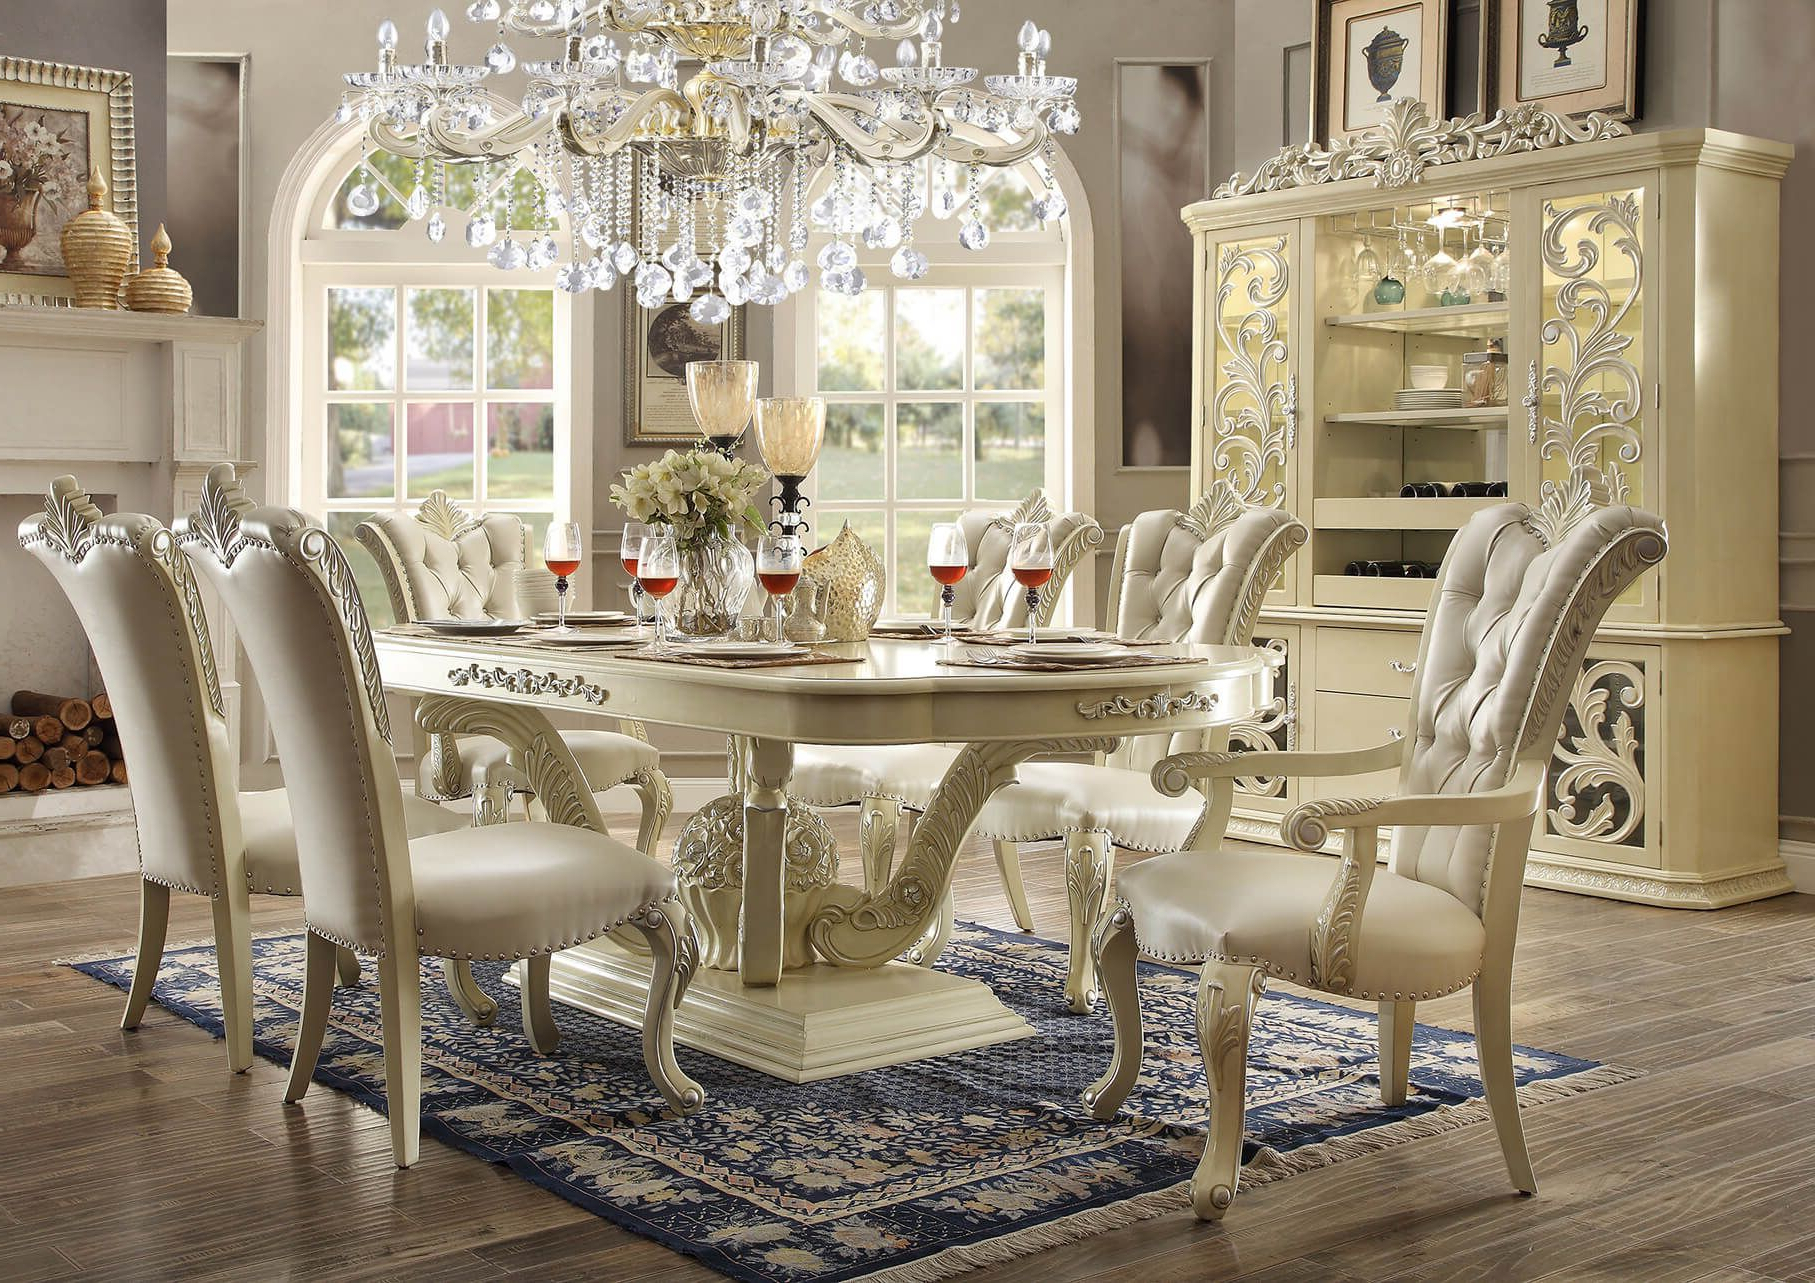 Chelmsford 3 Piece Dining Sets In Famous 9 Piece Homey Design Marbella Hd 27 Dining Set In (View 15 of 25)